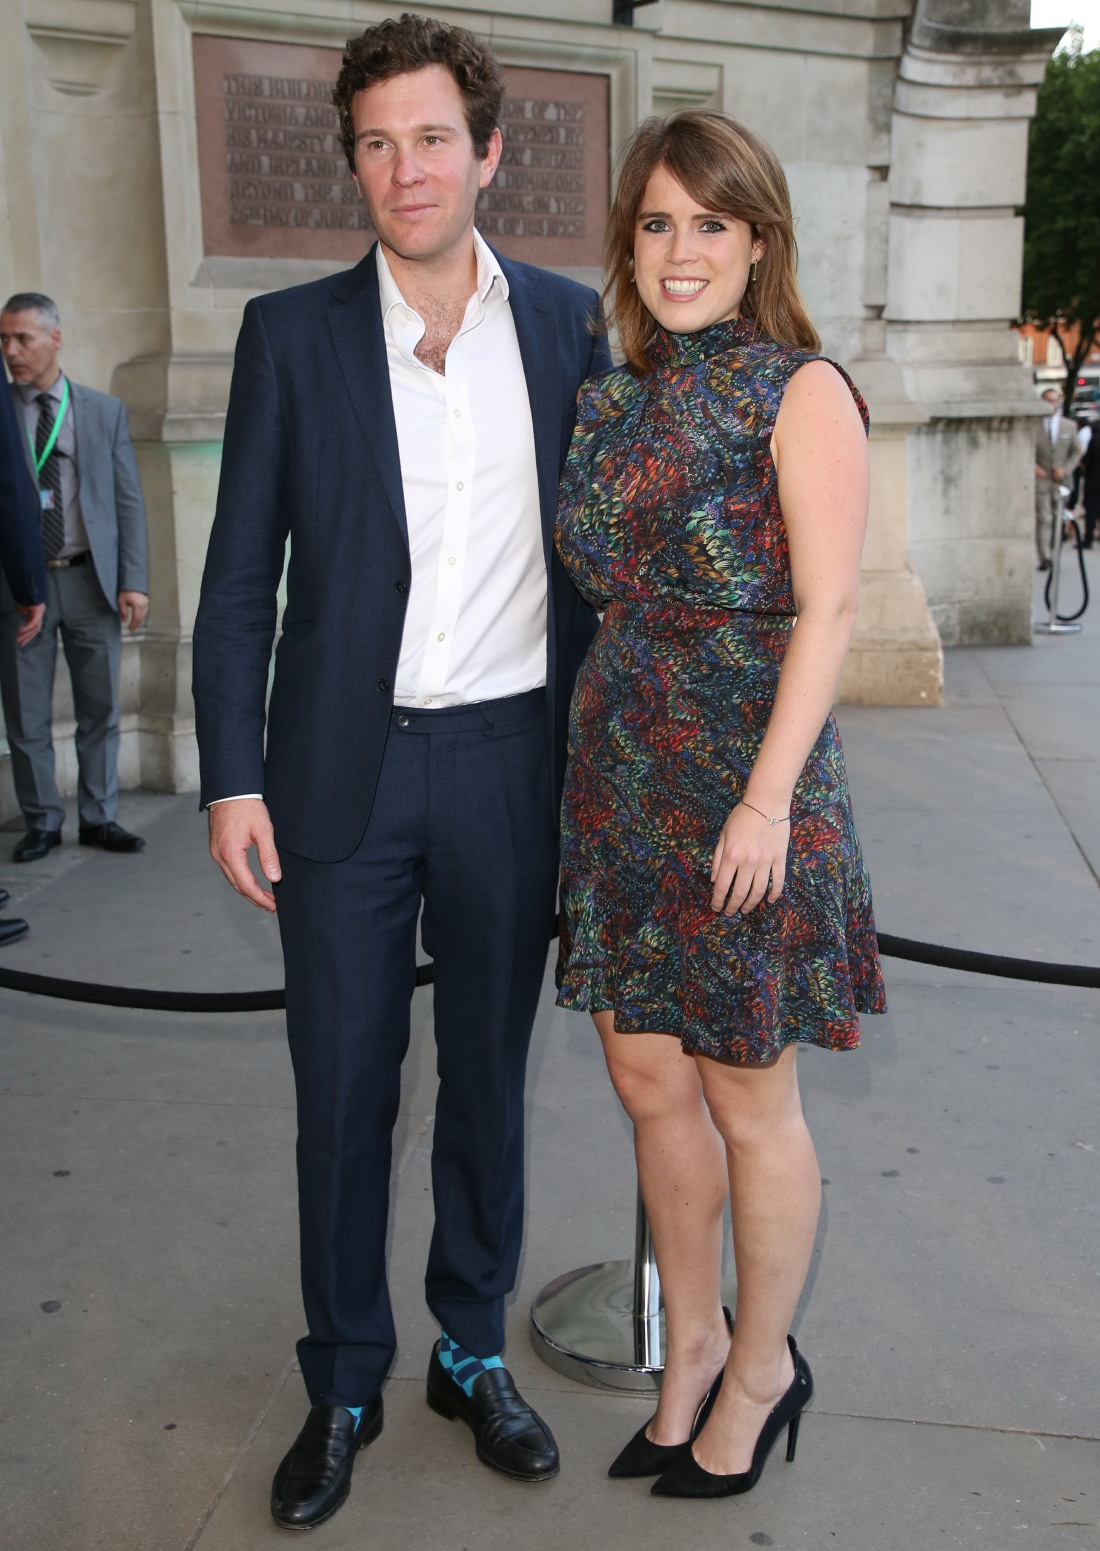 Princess Eugenie is engaged to her long-time boyfriend Jack Brooksbank